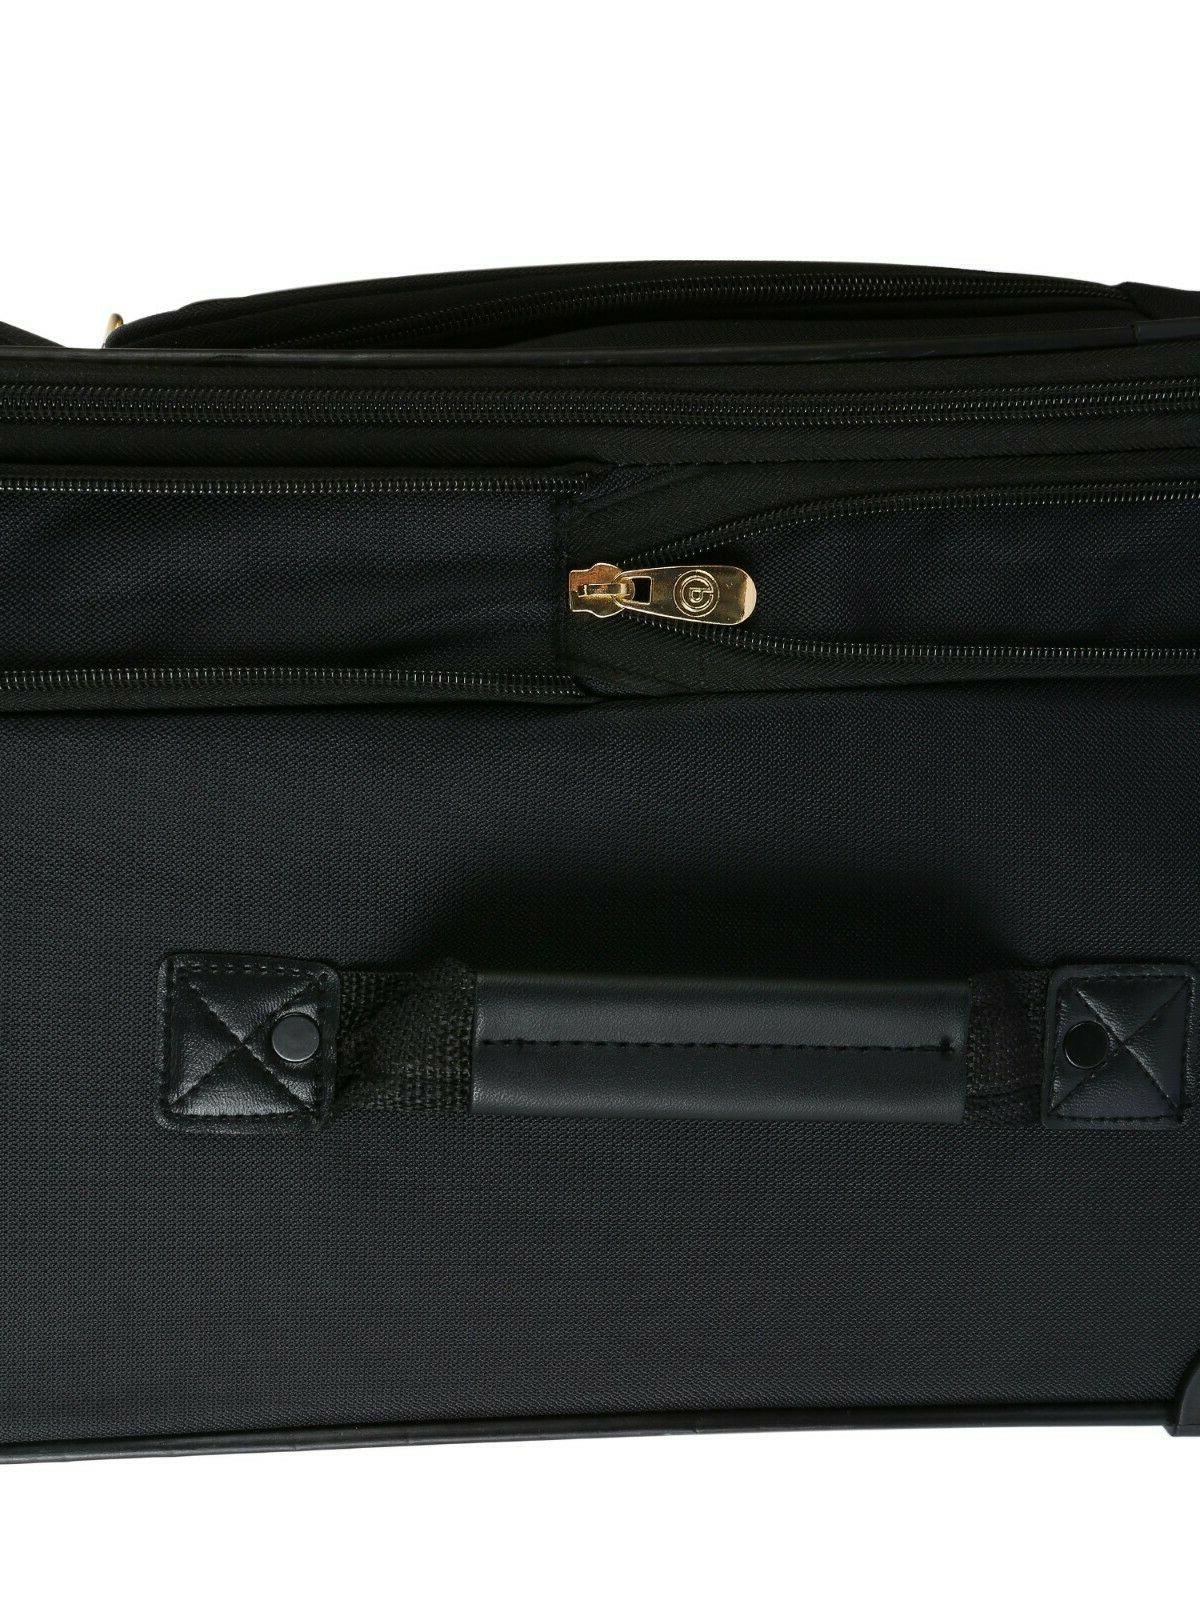 Luggage Set Protege Piece Expandable Quality- inch